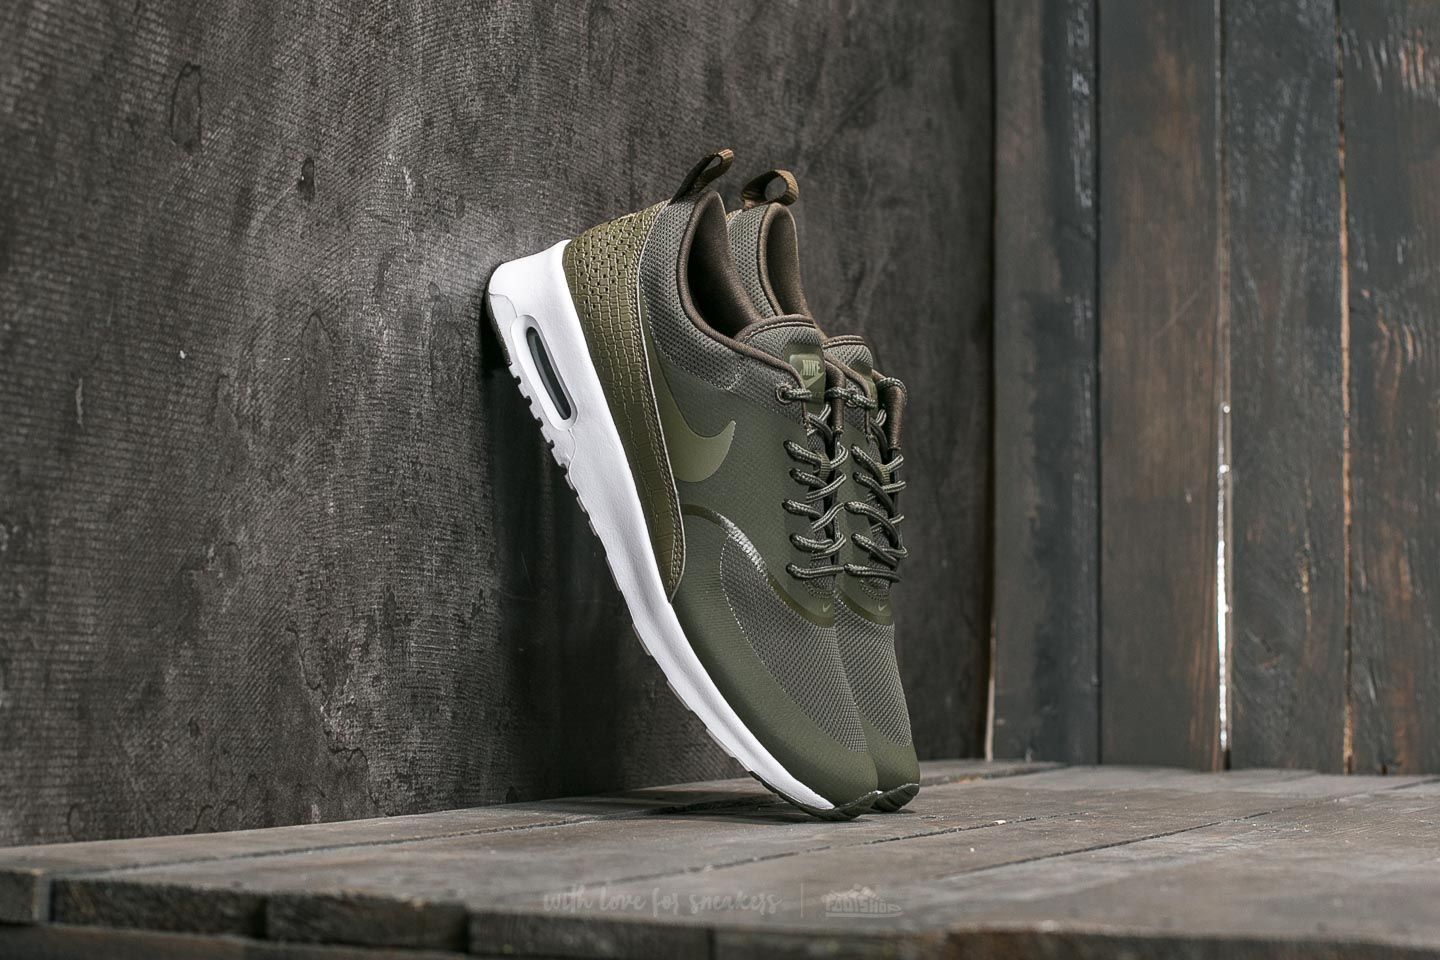 Nike W Air Max Thea Cargo Khaki/ Medium Olive/ White | Footshop